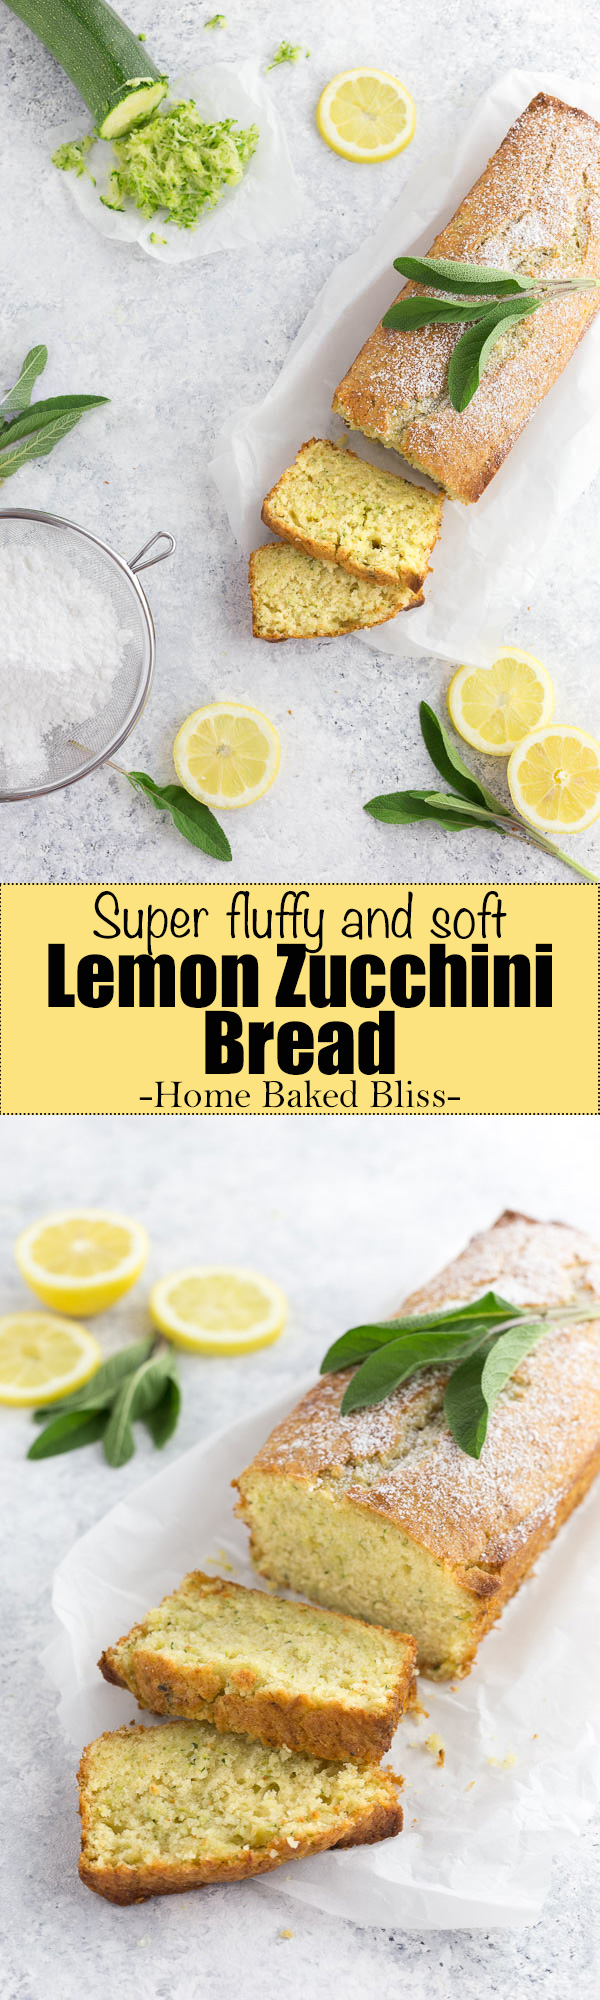 A soft and fluffy lemon zucchini bread. The perfect quick bread for summer!